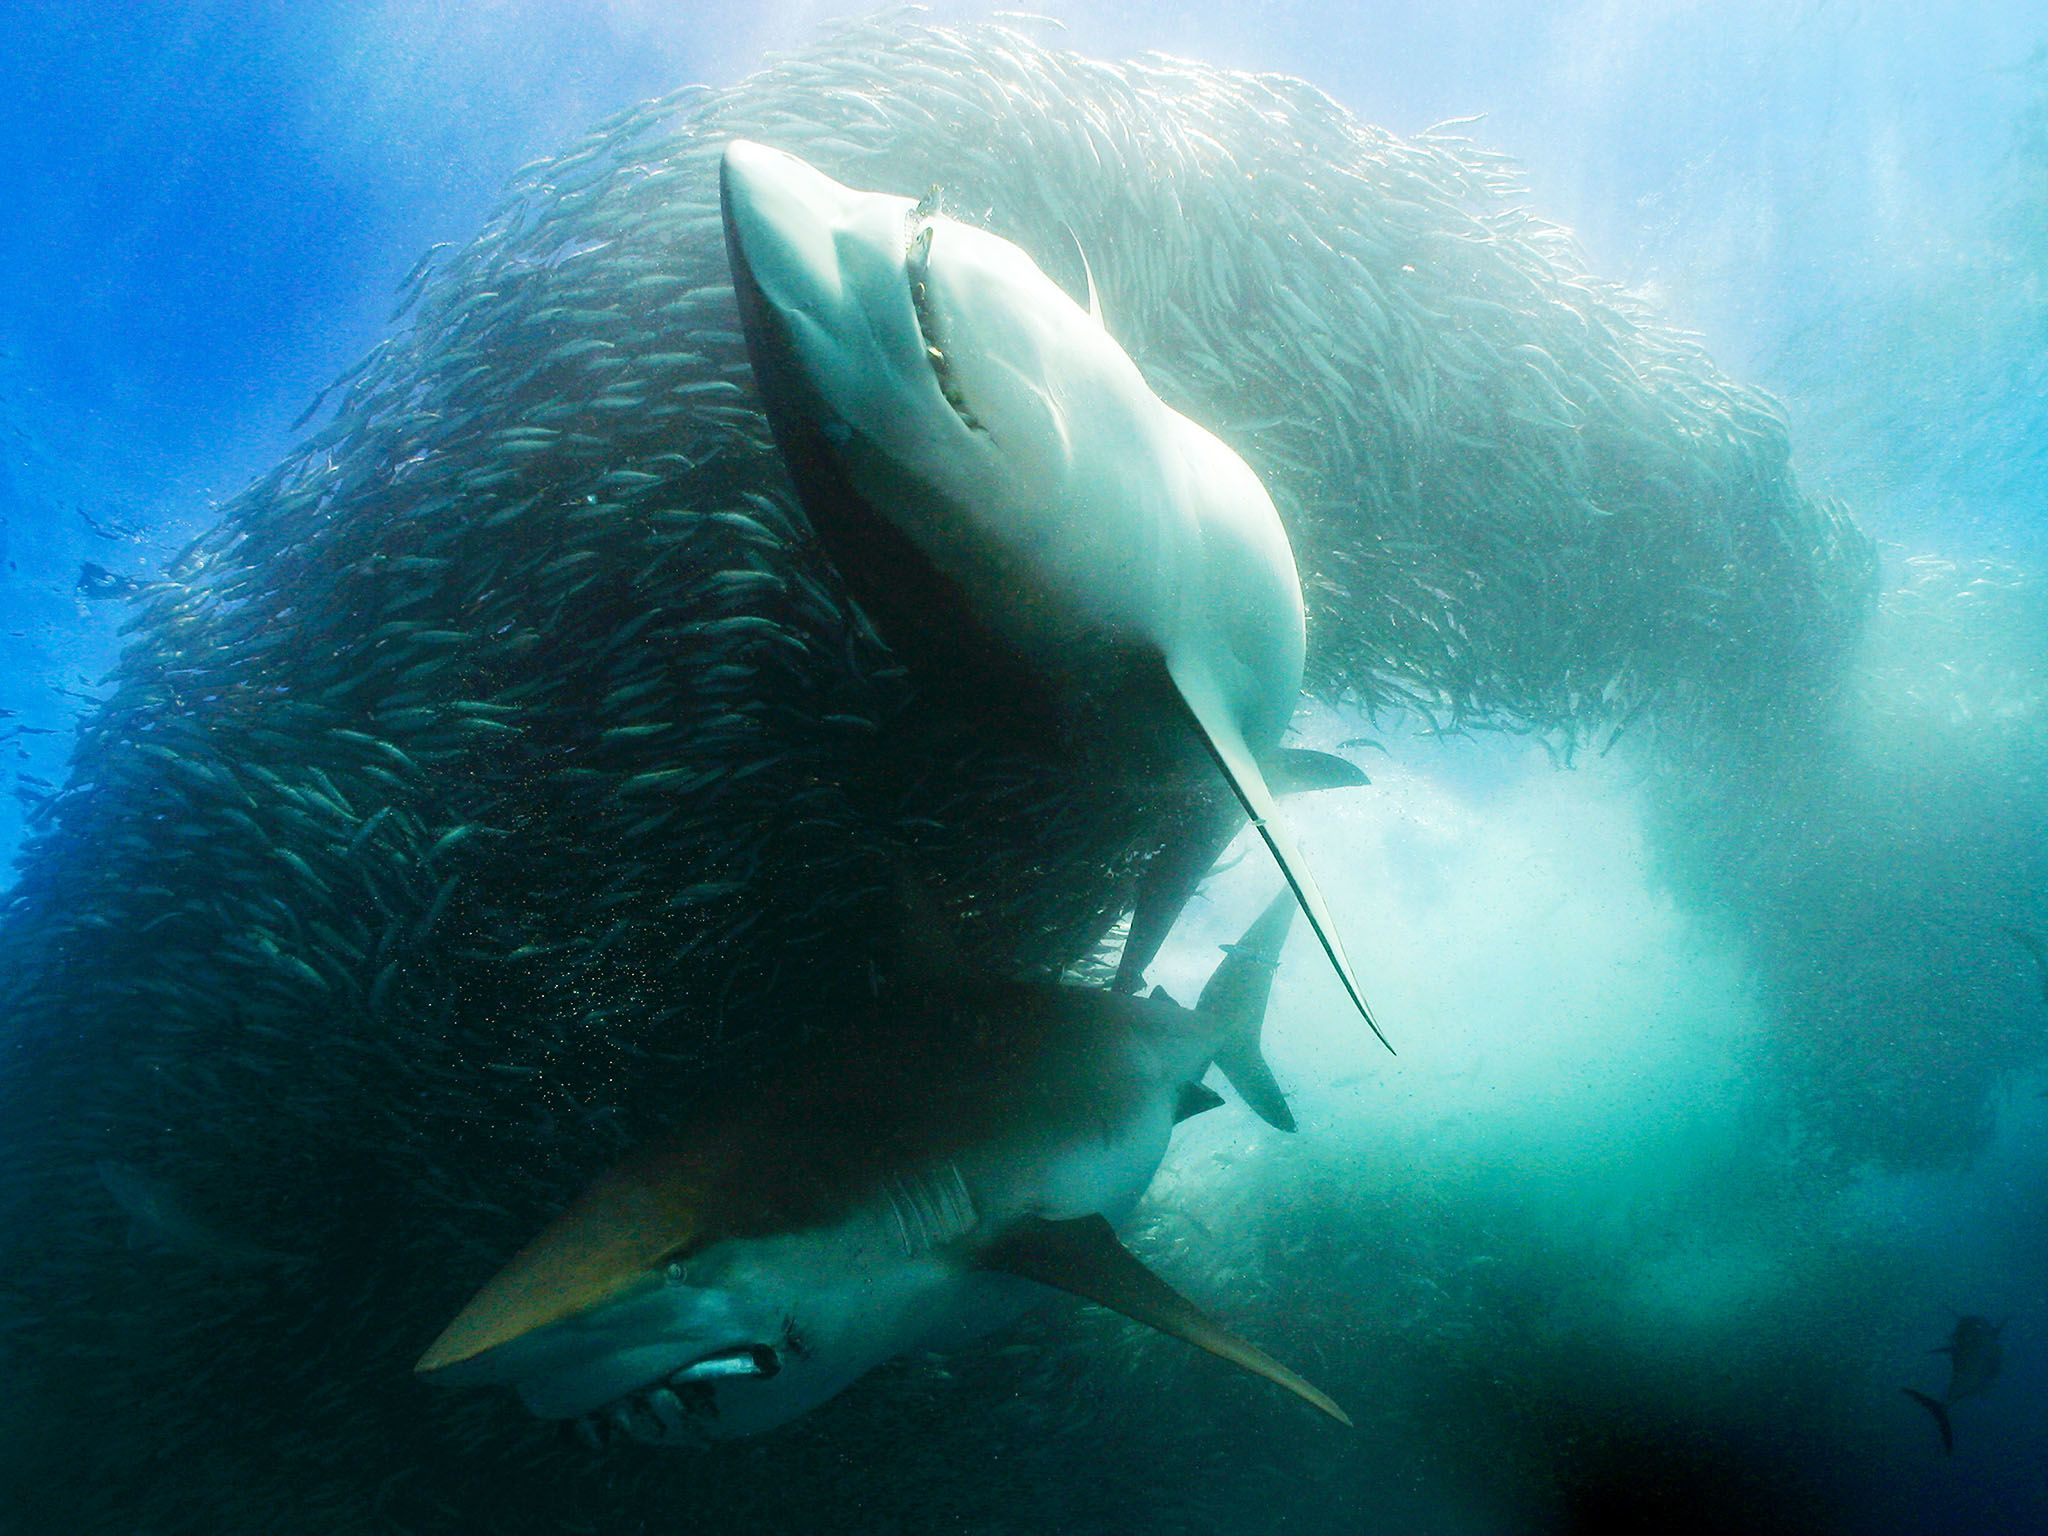 South Africa: Underwater scene of two Great White sharks with sardines in their mouths circling... [Photo of the day - August 2015]